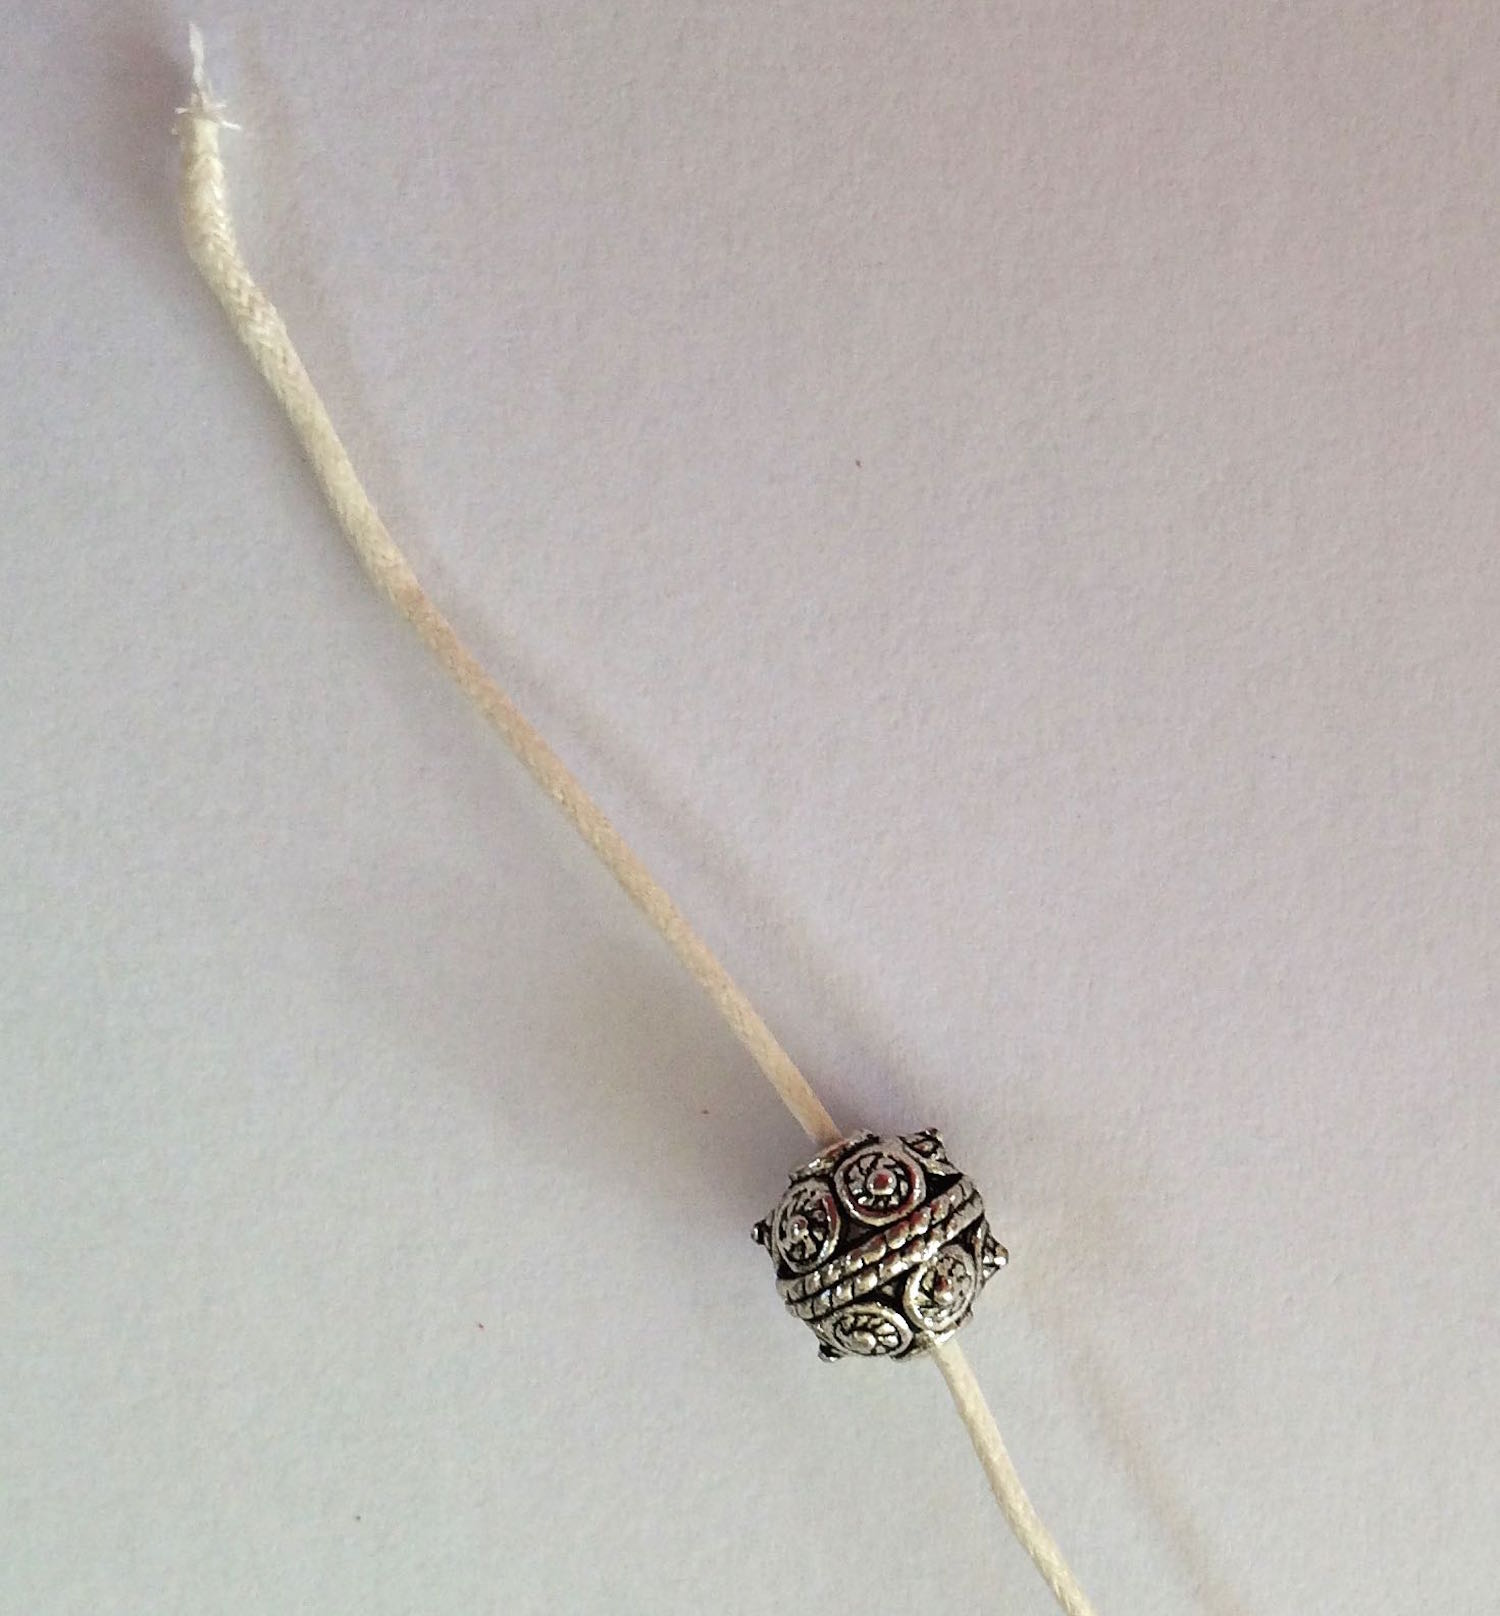 step 6 - Attach a decorative bead to the cord ends then tie a double knot.  The beads will prevent the cord from slipping out of the mesh.